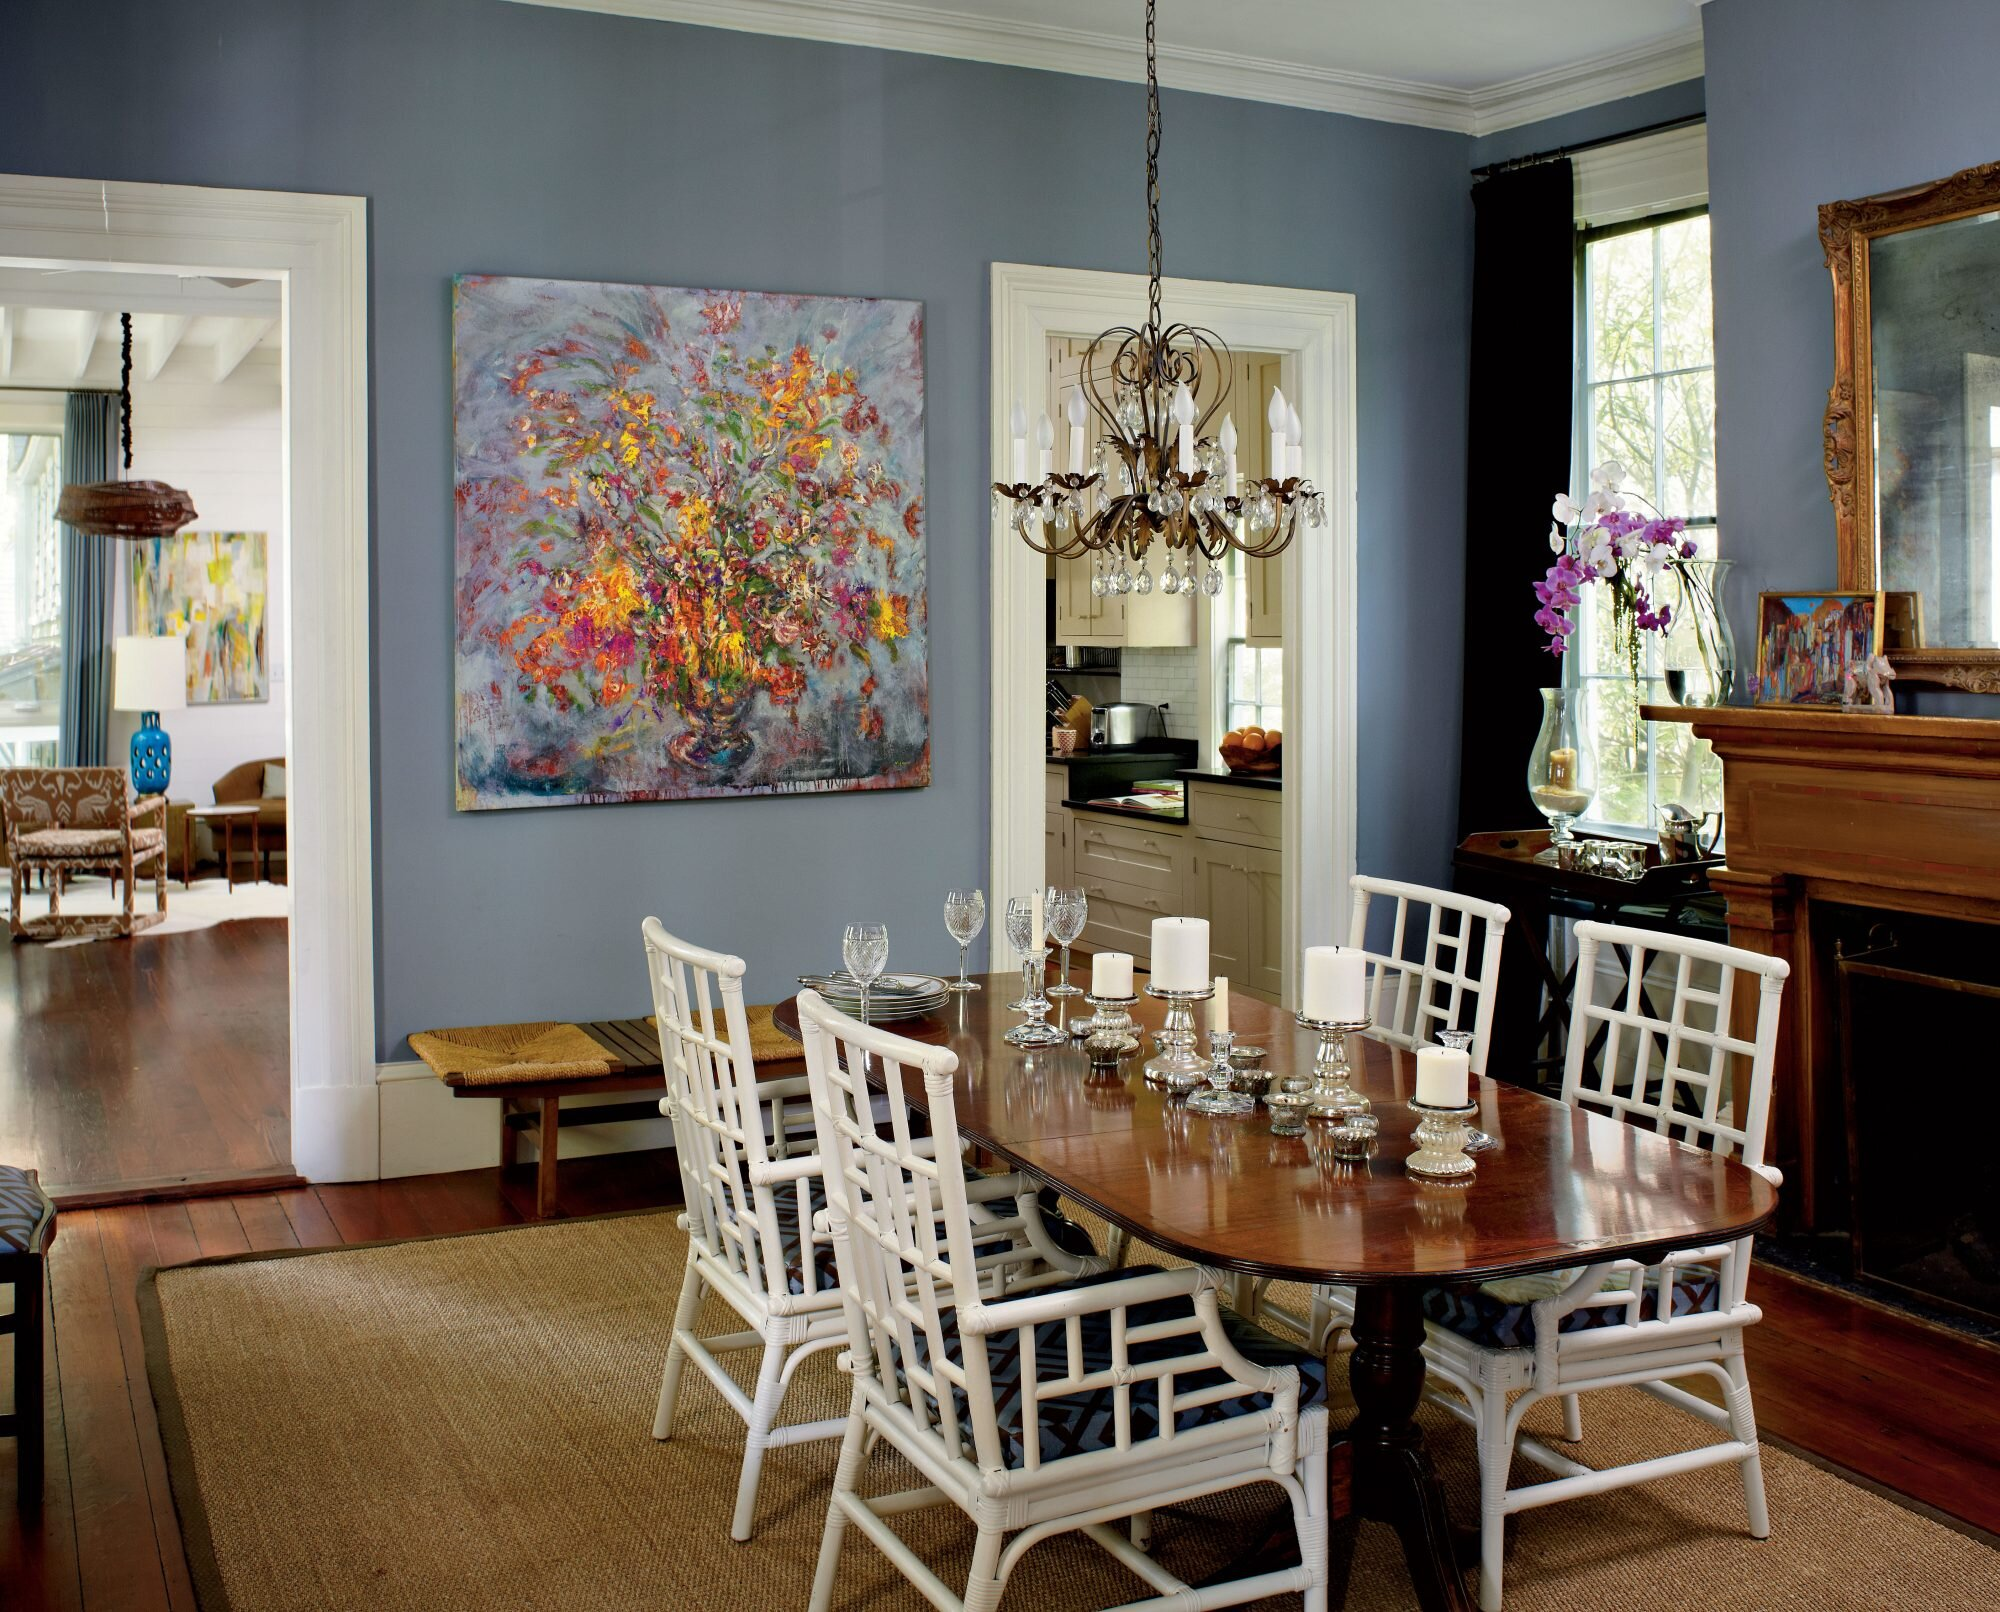 Budget Decorating Ideas: Embrace Your Inheritance | Southern ...